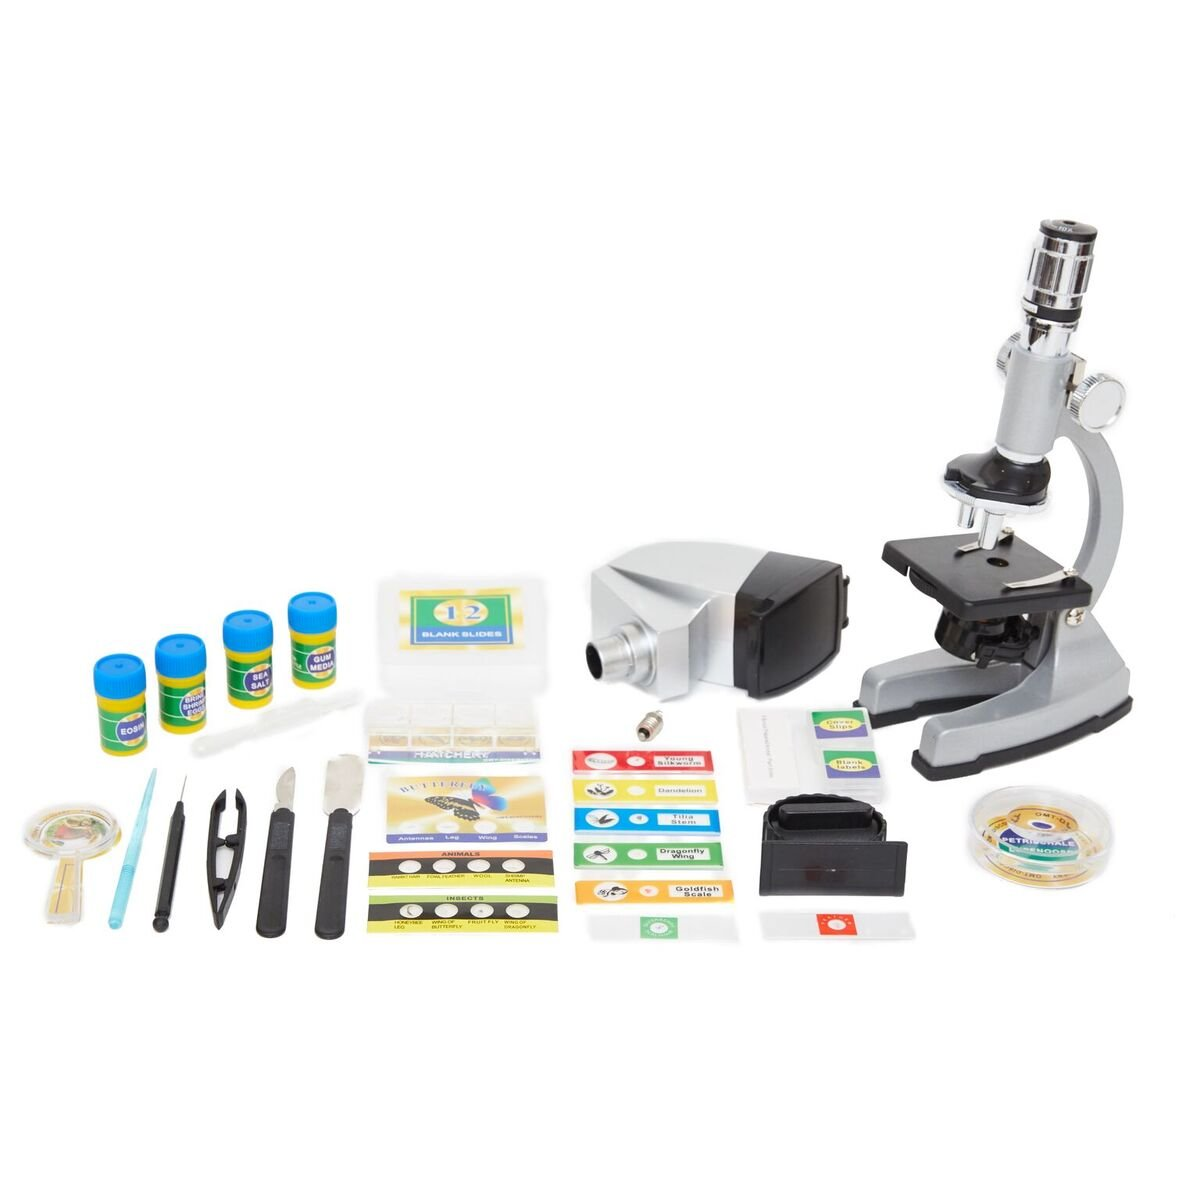 Microscope Kit with Metal Arm and Base, 6 Magnifications from 50x to 1200x, Includes 86-Piece Accessory Set and Case, Best Top Pick of Microscopes For Beginners (5 Bonus Animal/Plant sides)